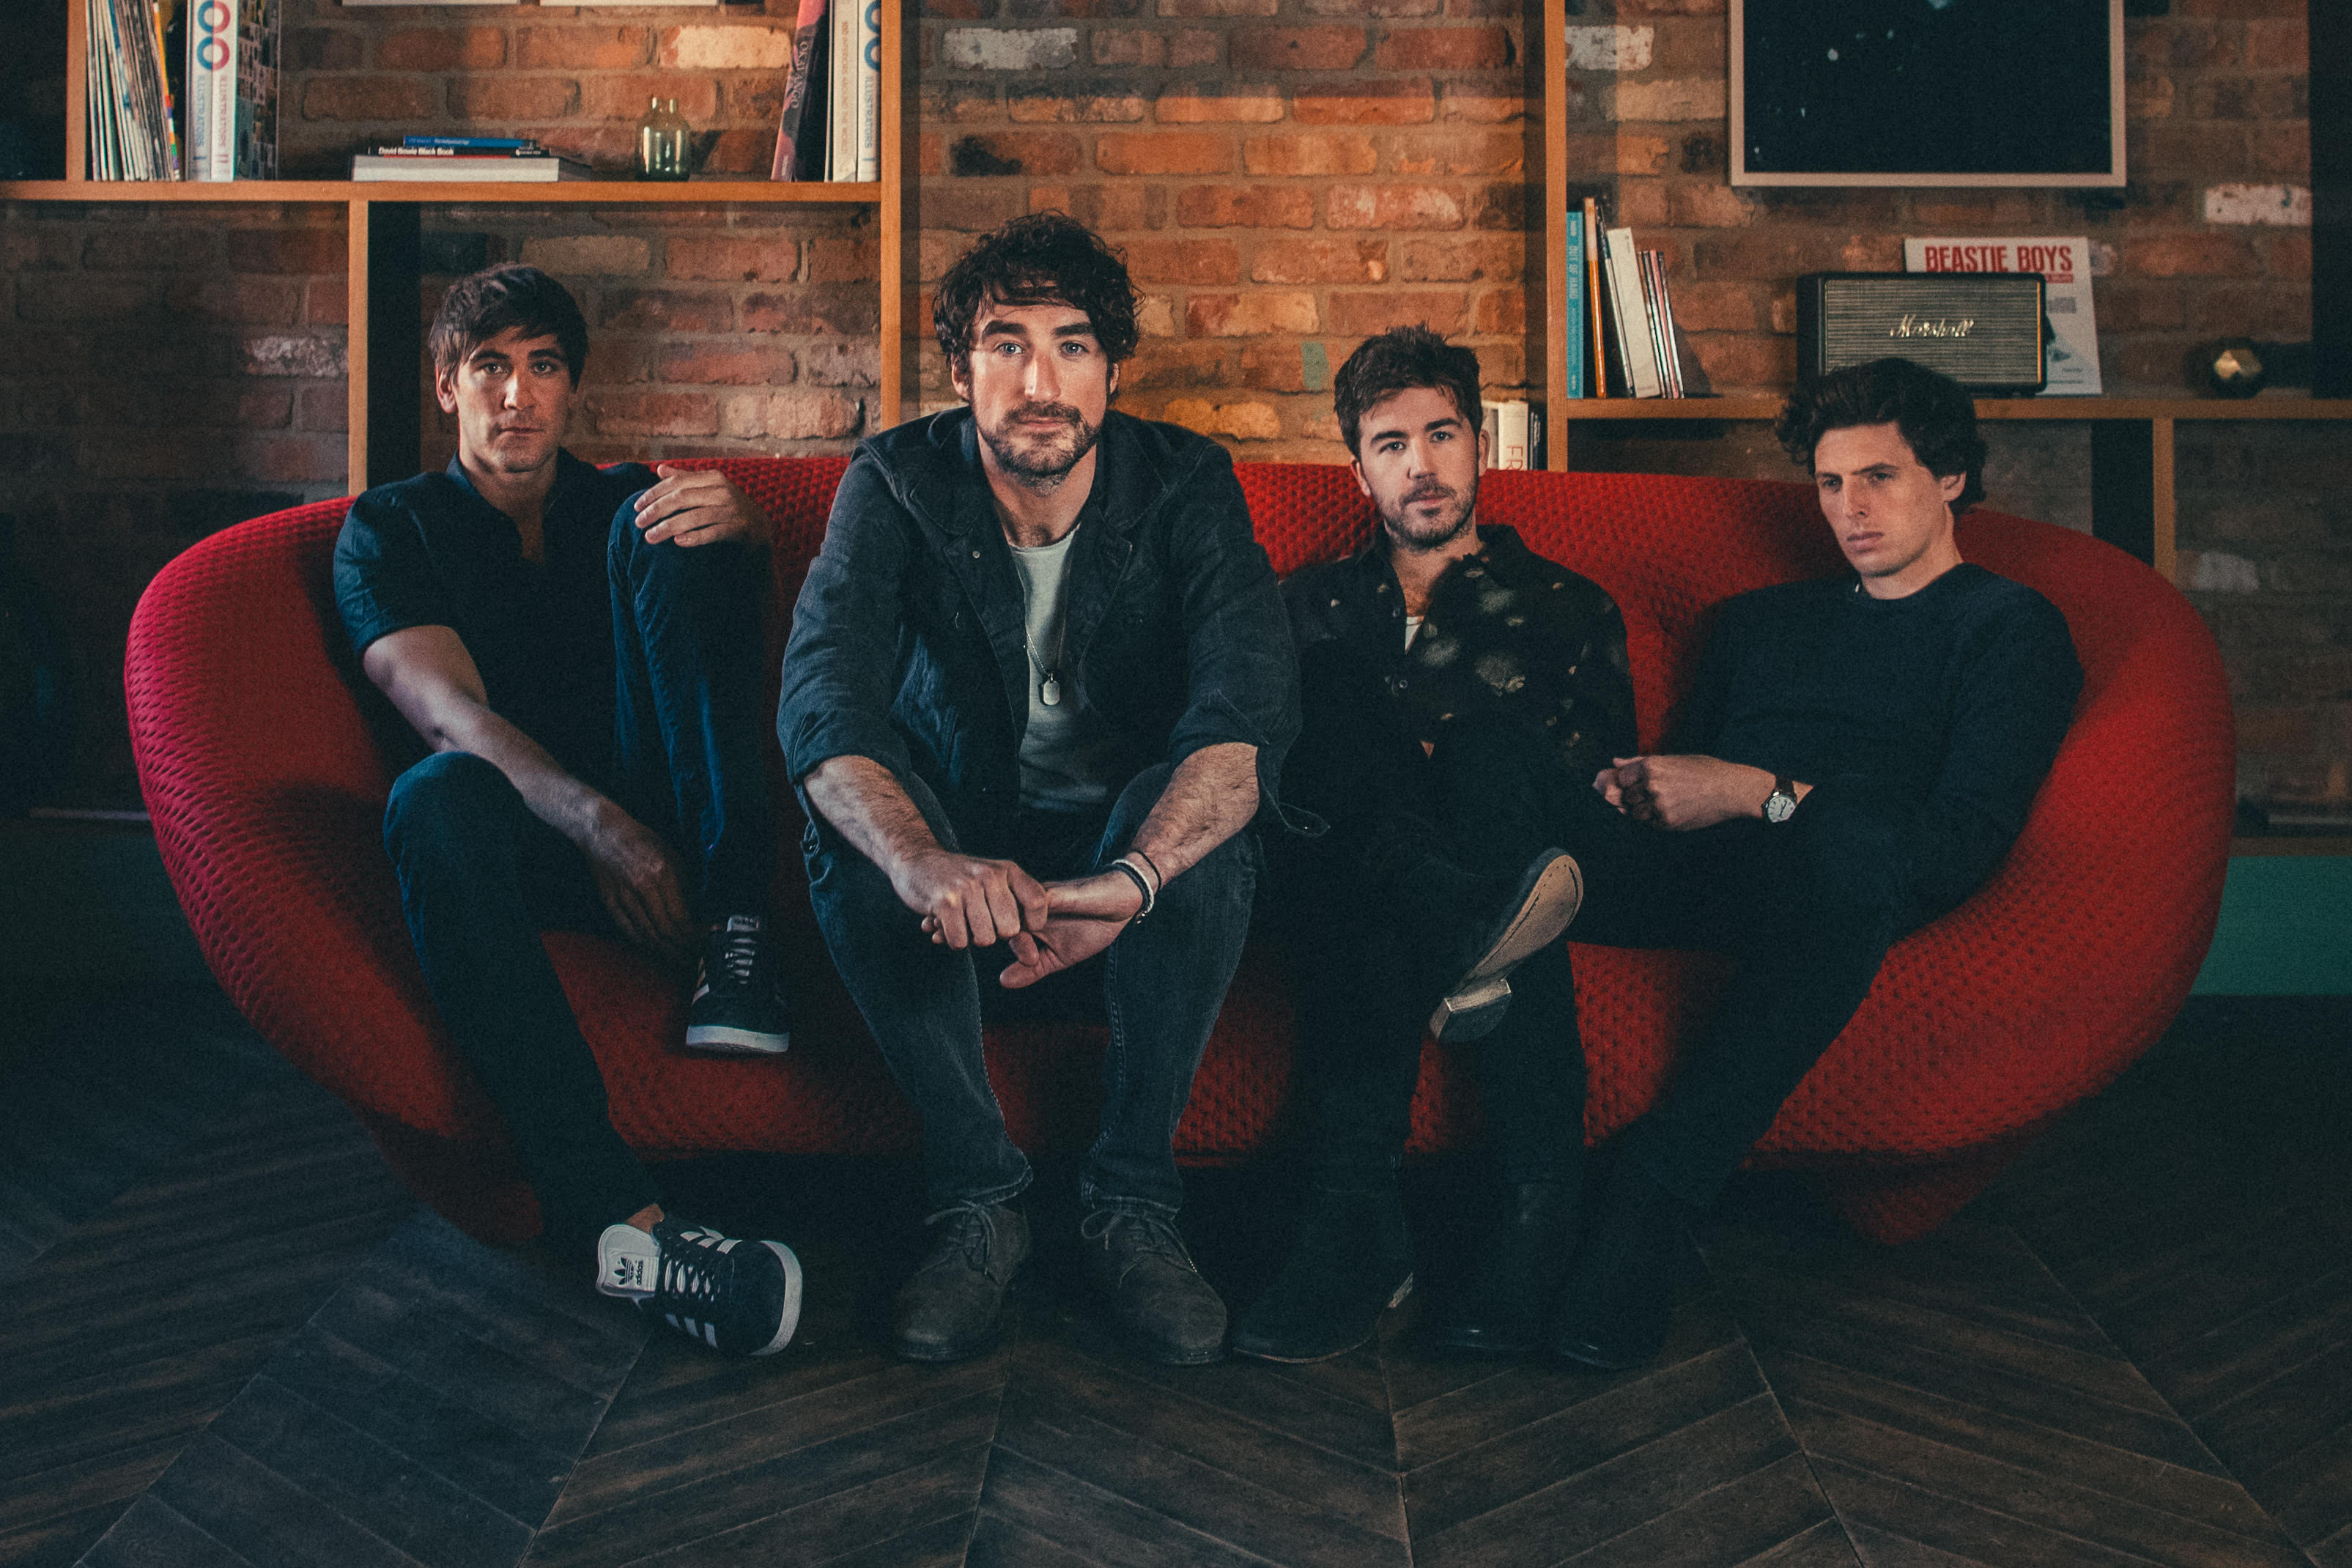 The Coronas announce December 29th date at the INEC Killarney